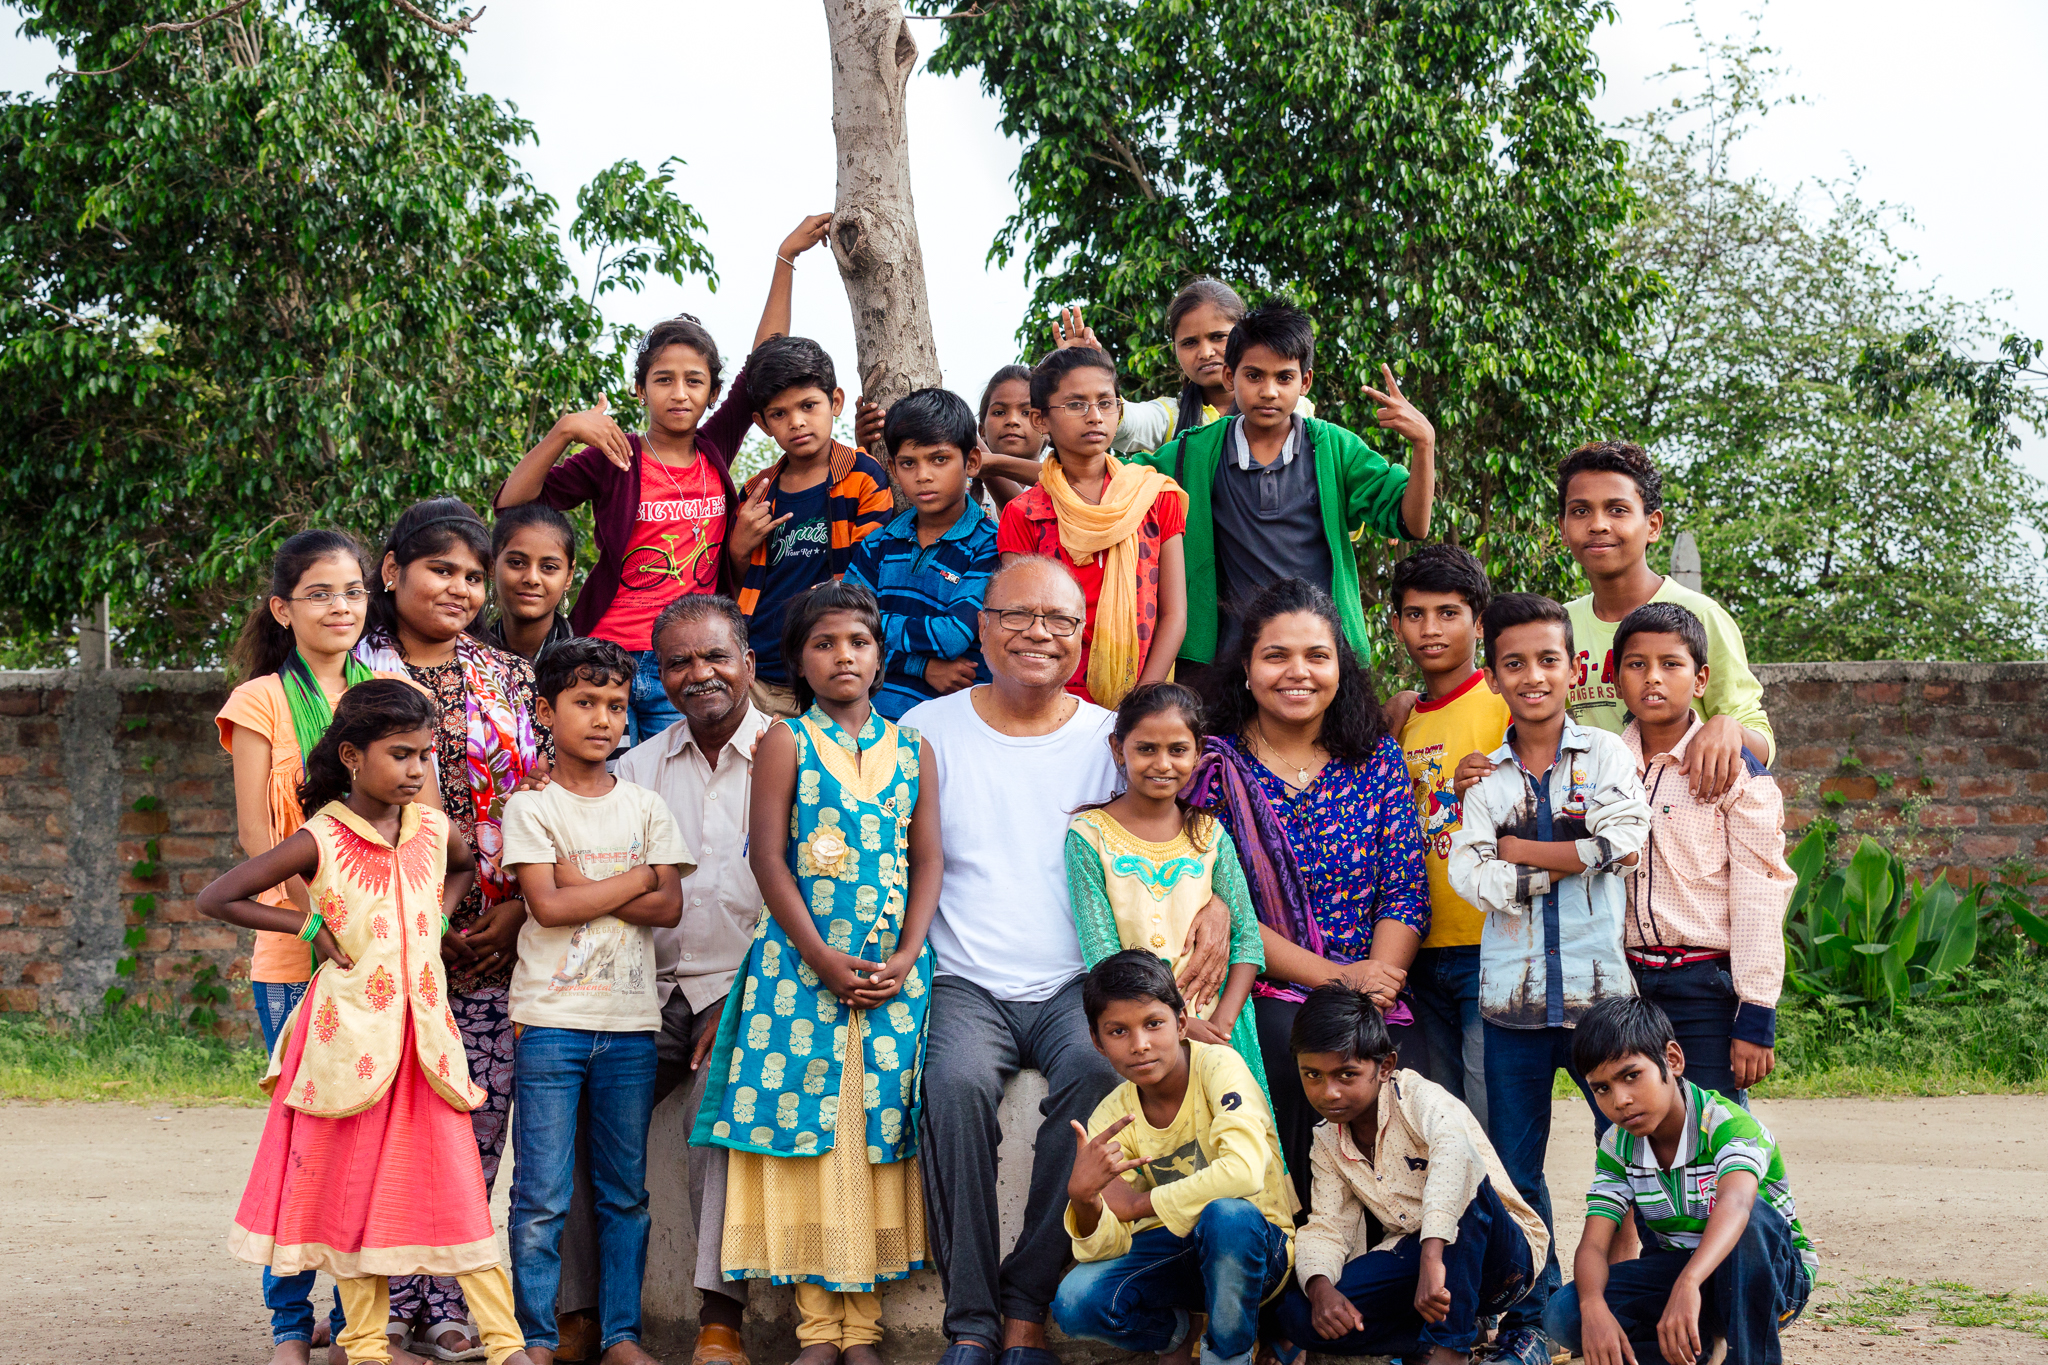 A group photo of a lot of the kids from the orphanage and the man who started it in the 90s. He was inspired to start a school and an orphanage with his wife after being orphaned at 6 and growing up in boarding schools in India